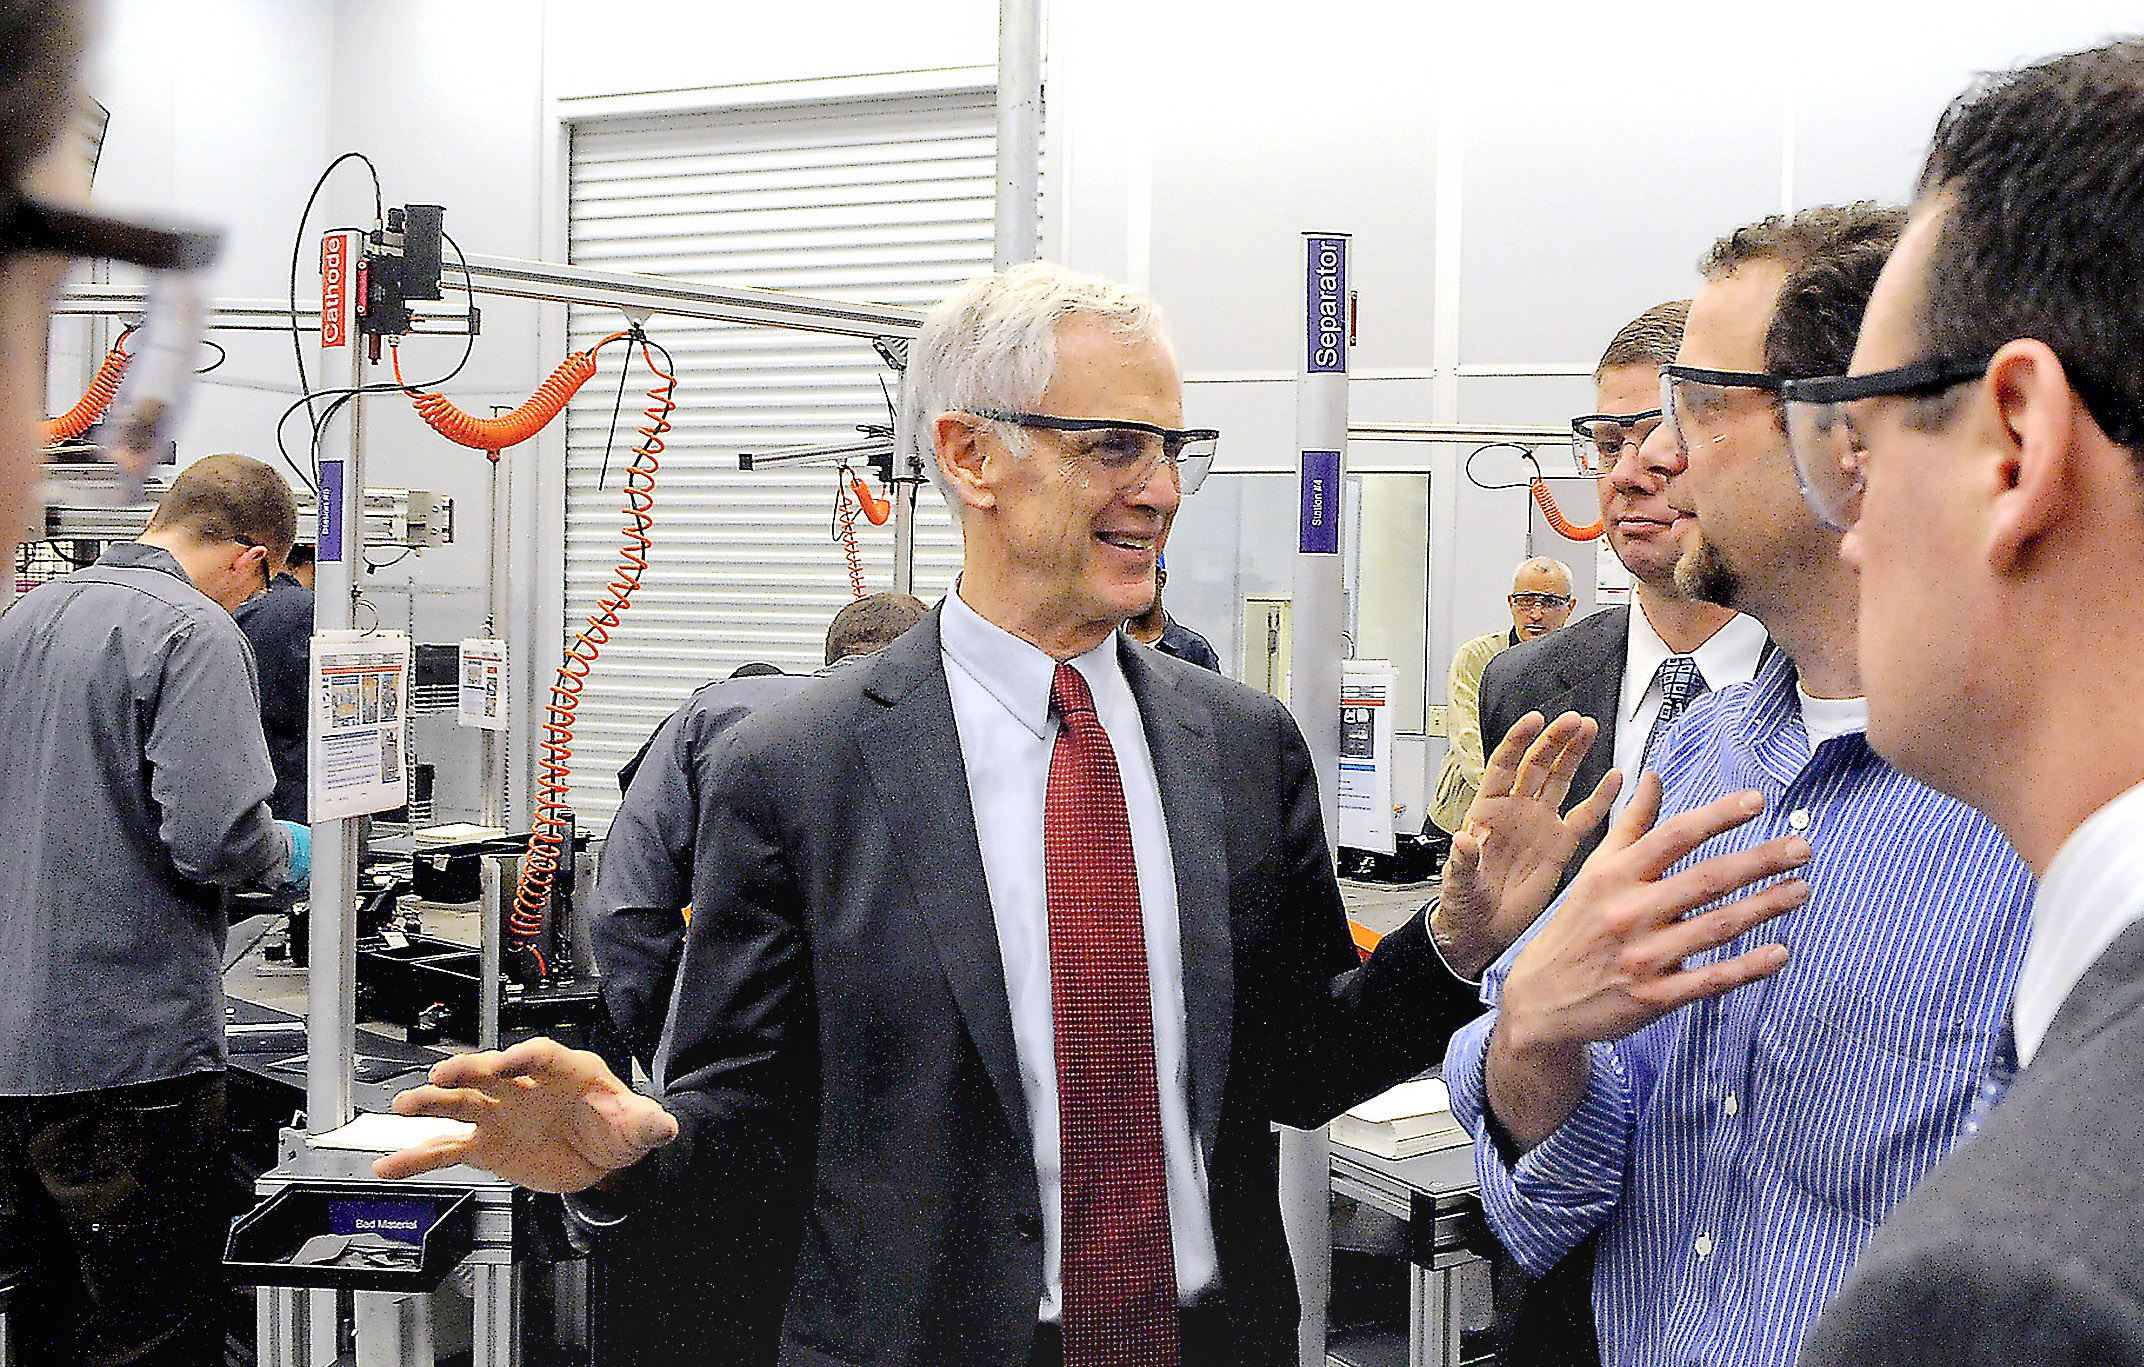 92800kmk-1 From left: Commerce Secretary John Bryson talks with Aquion Energy CEO Scott Pearson and CTO Jay Whitacre along with then-Pittsburgh Mayor Luke Ravenstahl during a tour of the company in 2012.